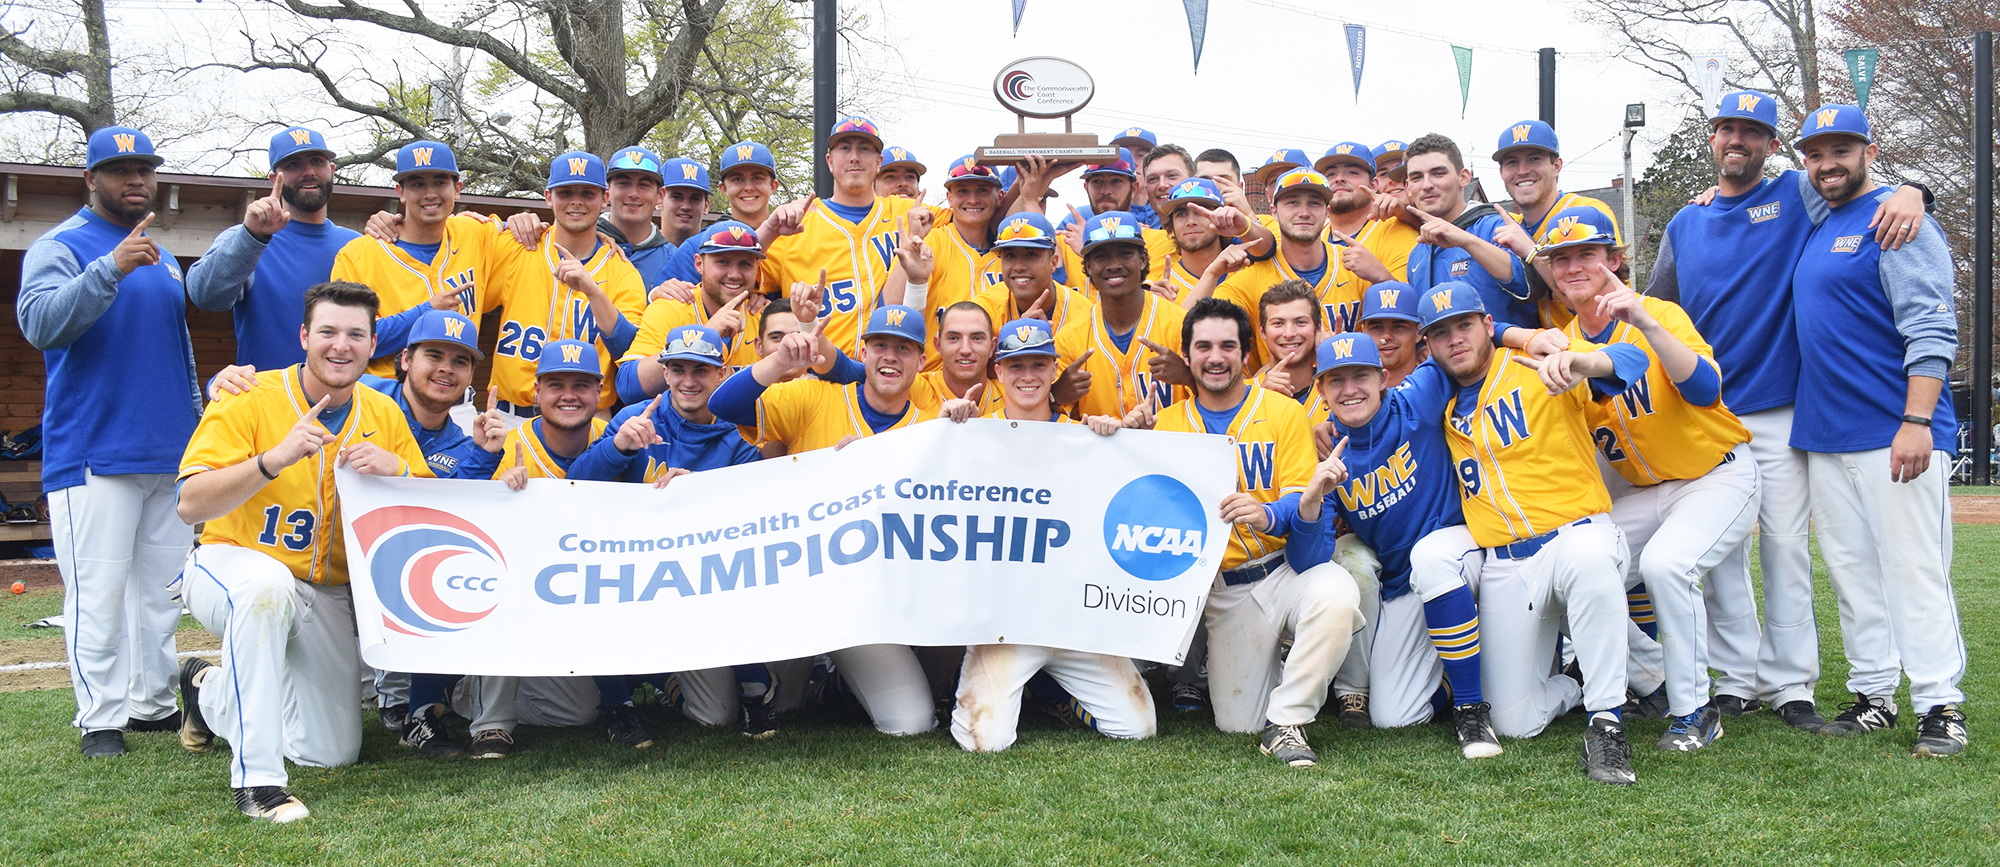 Western New England captured its sixth CCC title and first since 2012 with a 7-6, walkoff victory over Salve Regina on Sunday at Reynolds Field in Newport, R.I. (Photo by Jim Balderston)